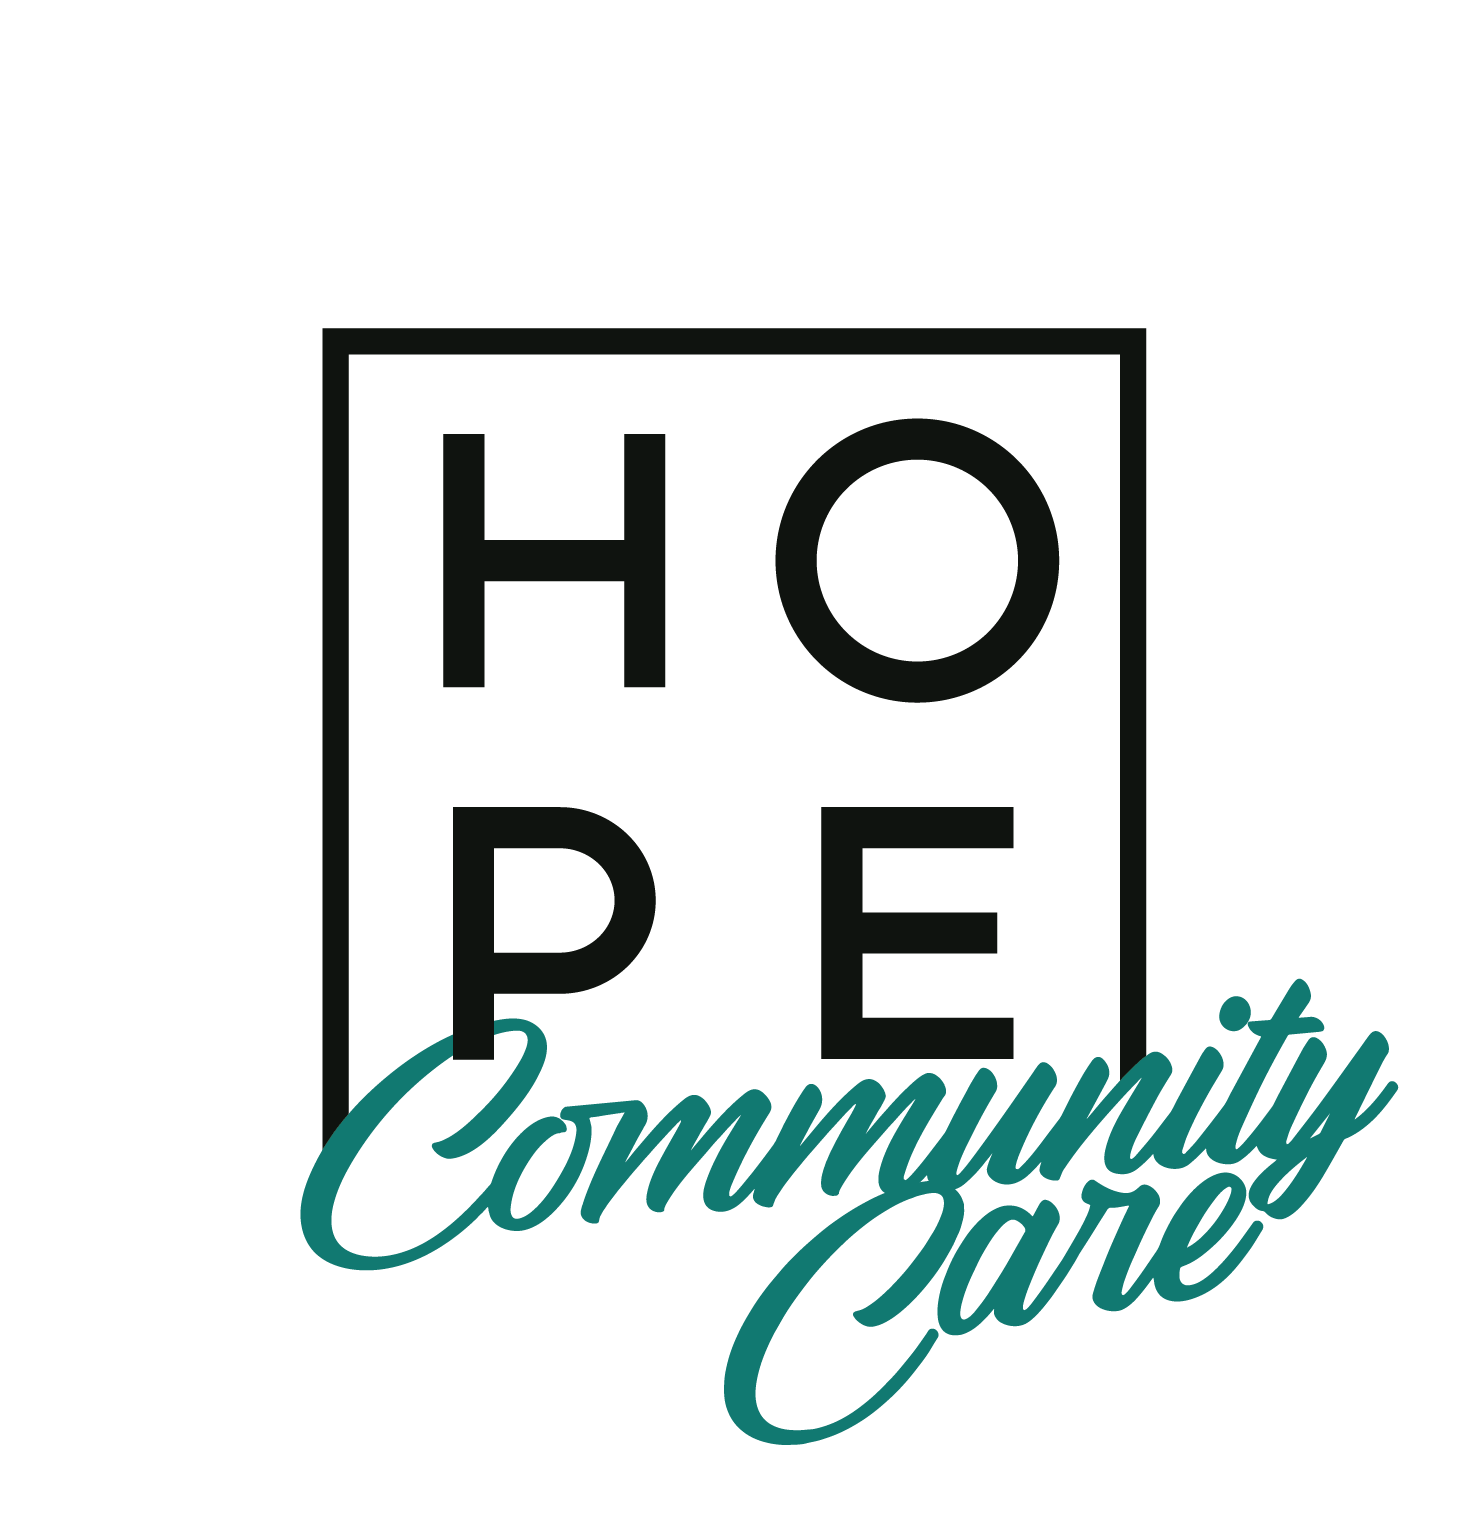 HCTN_CommunityCare_Boxed-dark